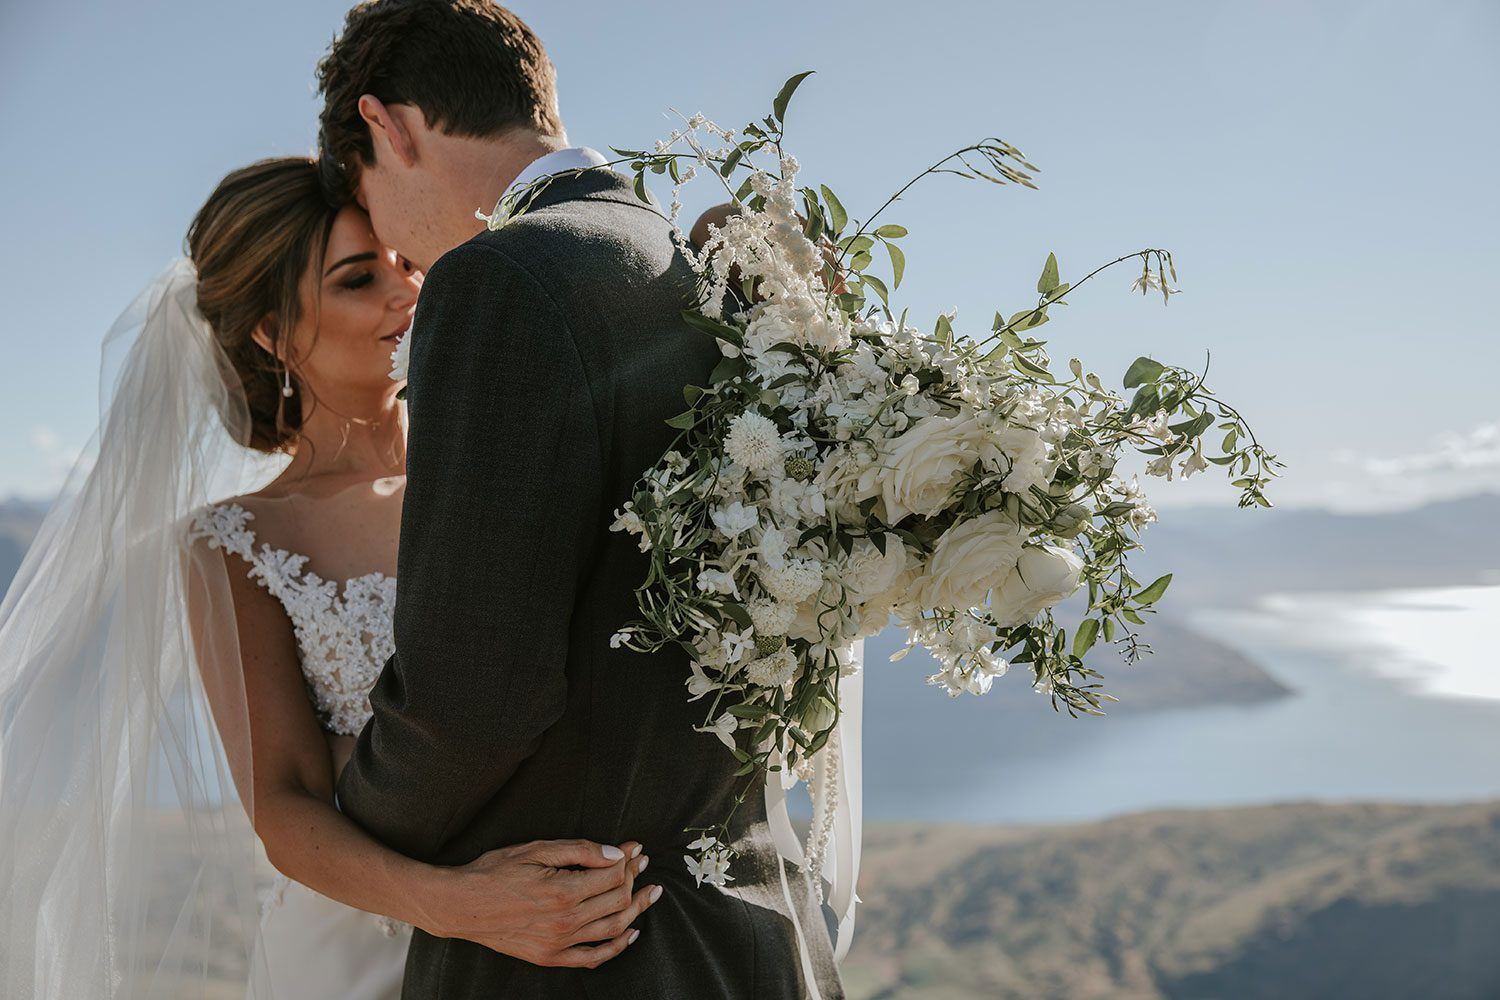 Bride wearing bespoke bridal gown with richly beaded lace over sheer tulle bodice and low back from Auckland wedding dress designer Vinka designs - embrace with groom bouquet